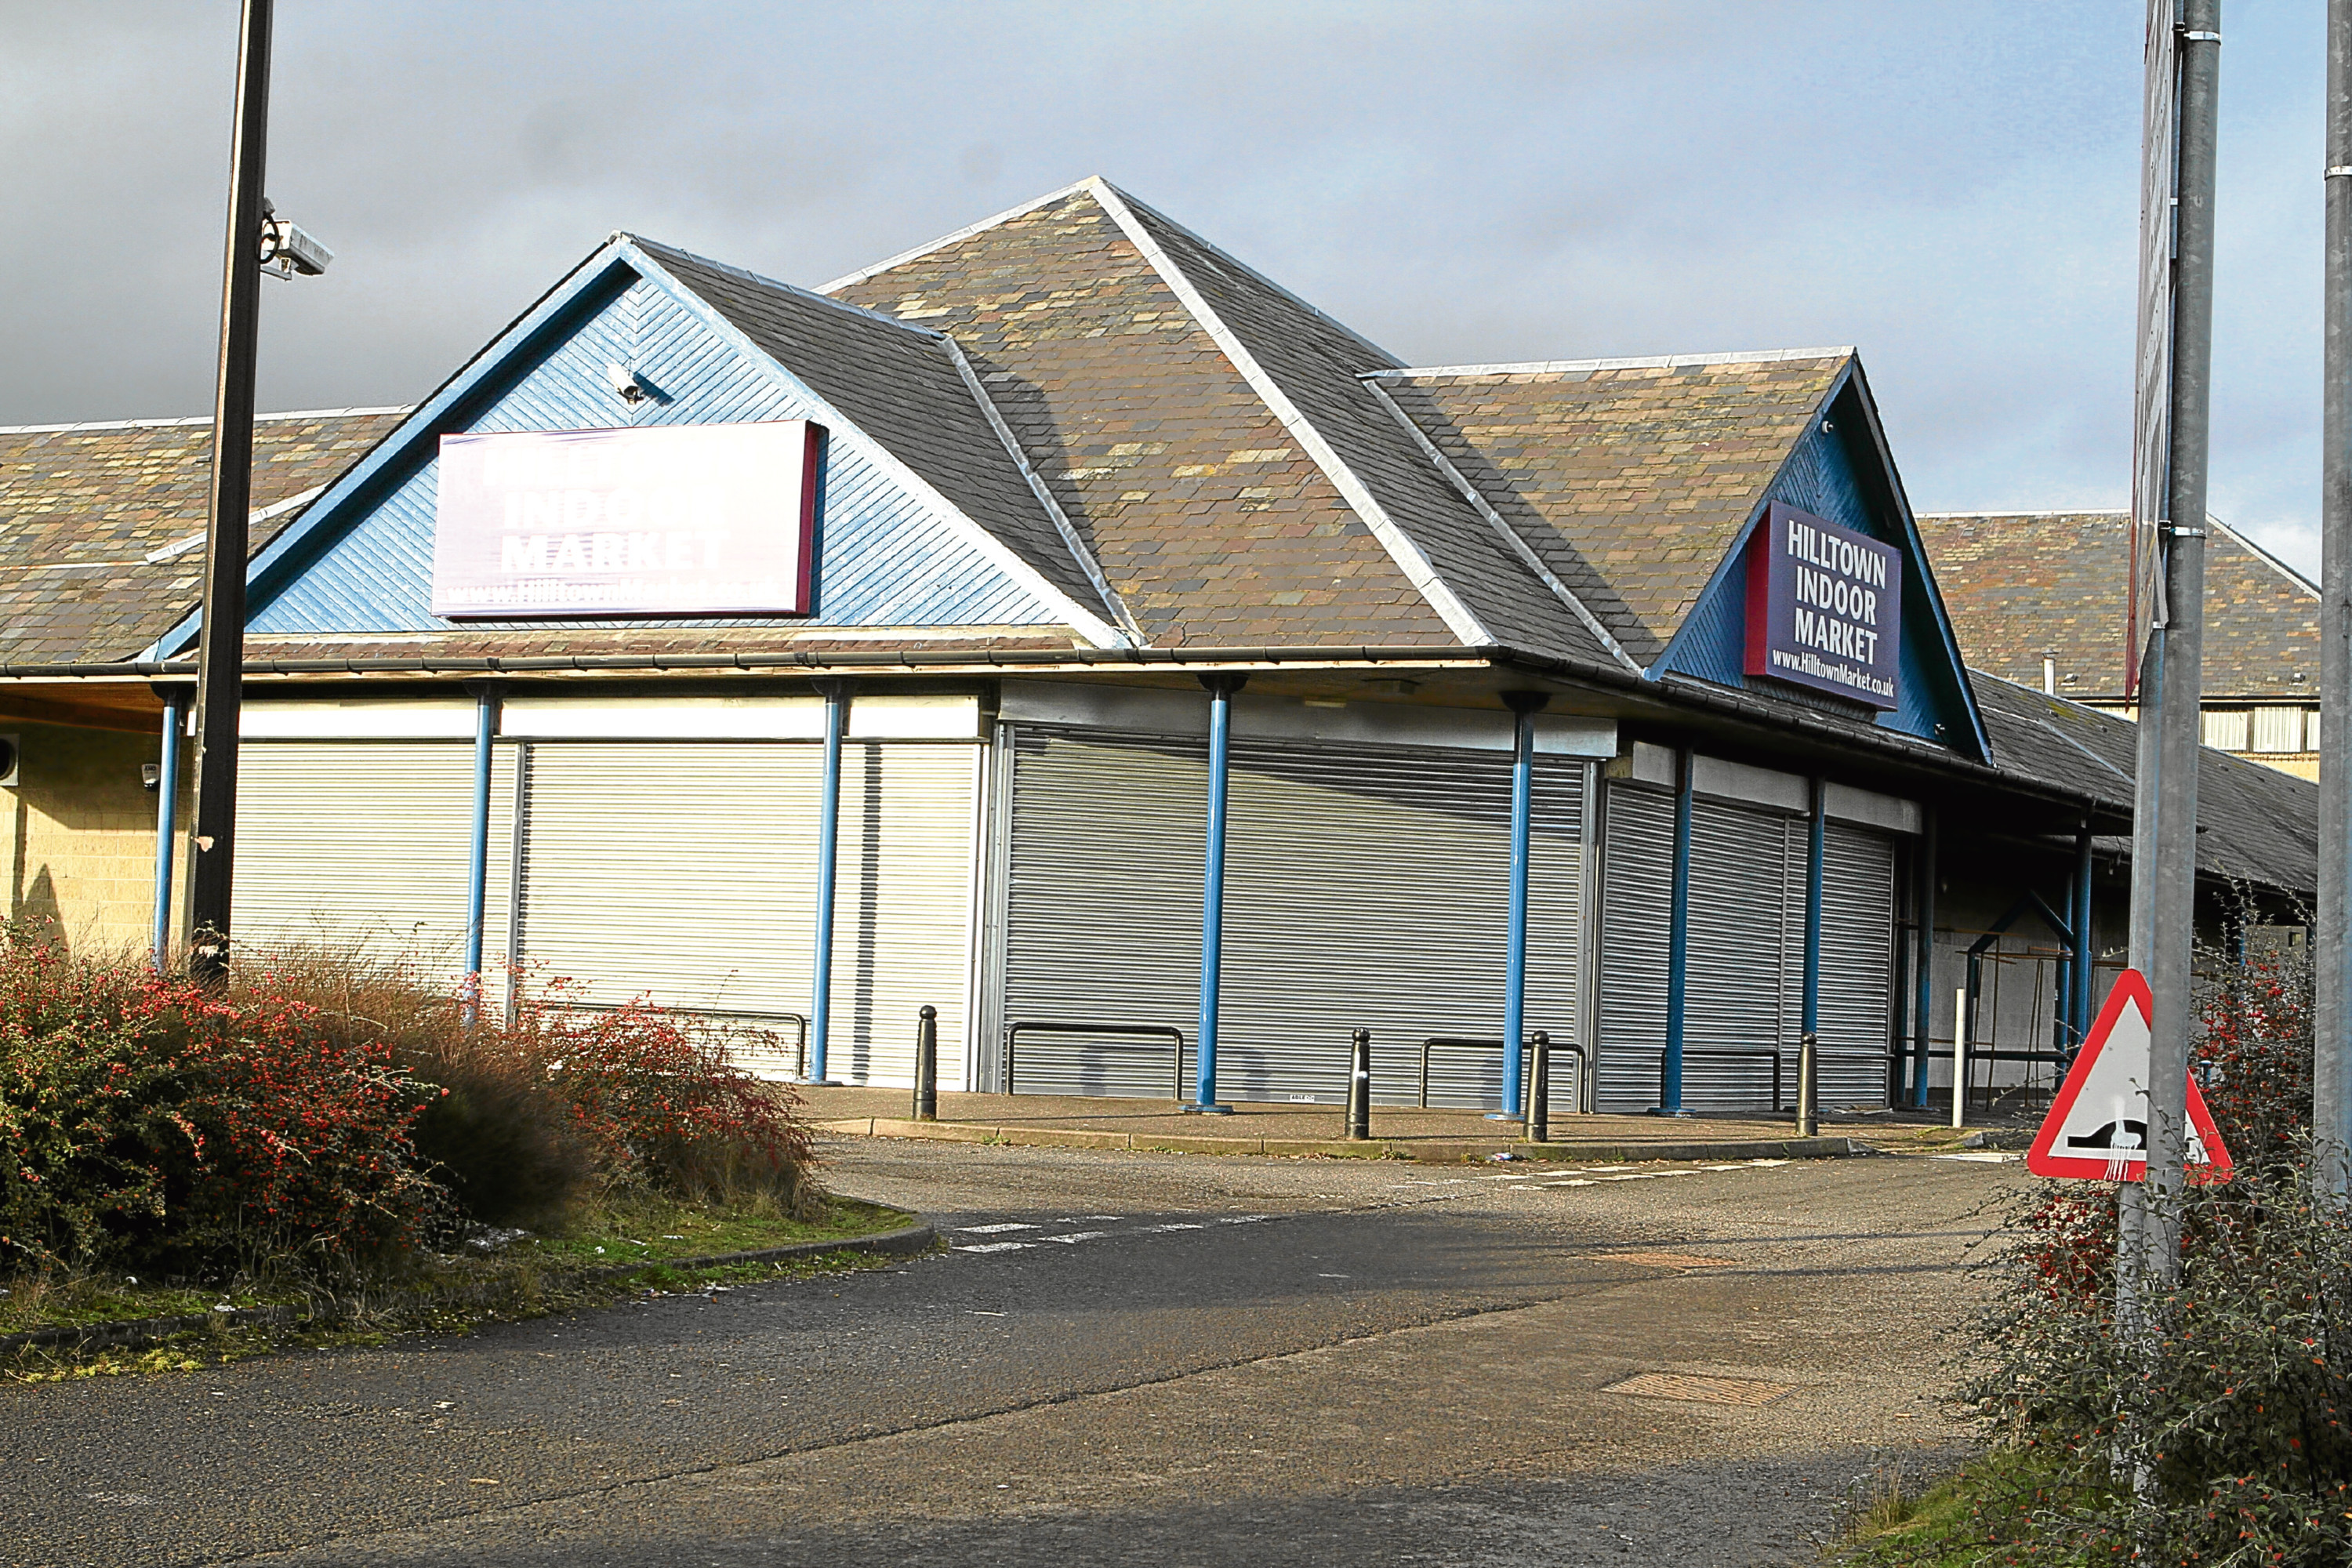 Hilltown Indoor Market closed in 2016 and has not reopened